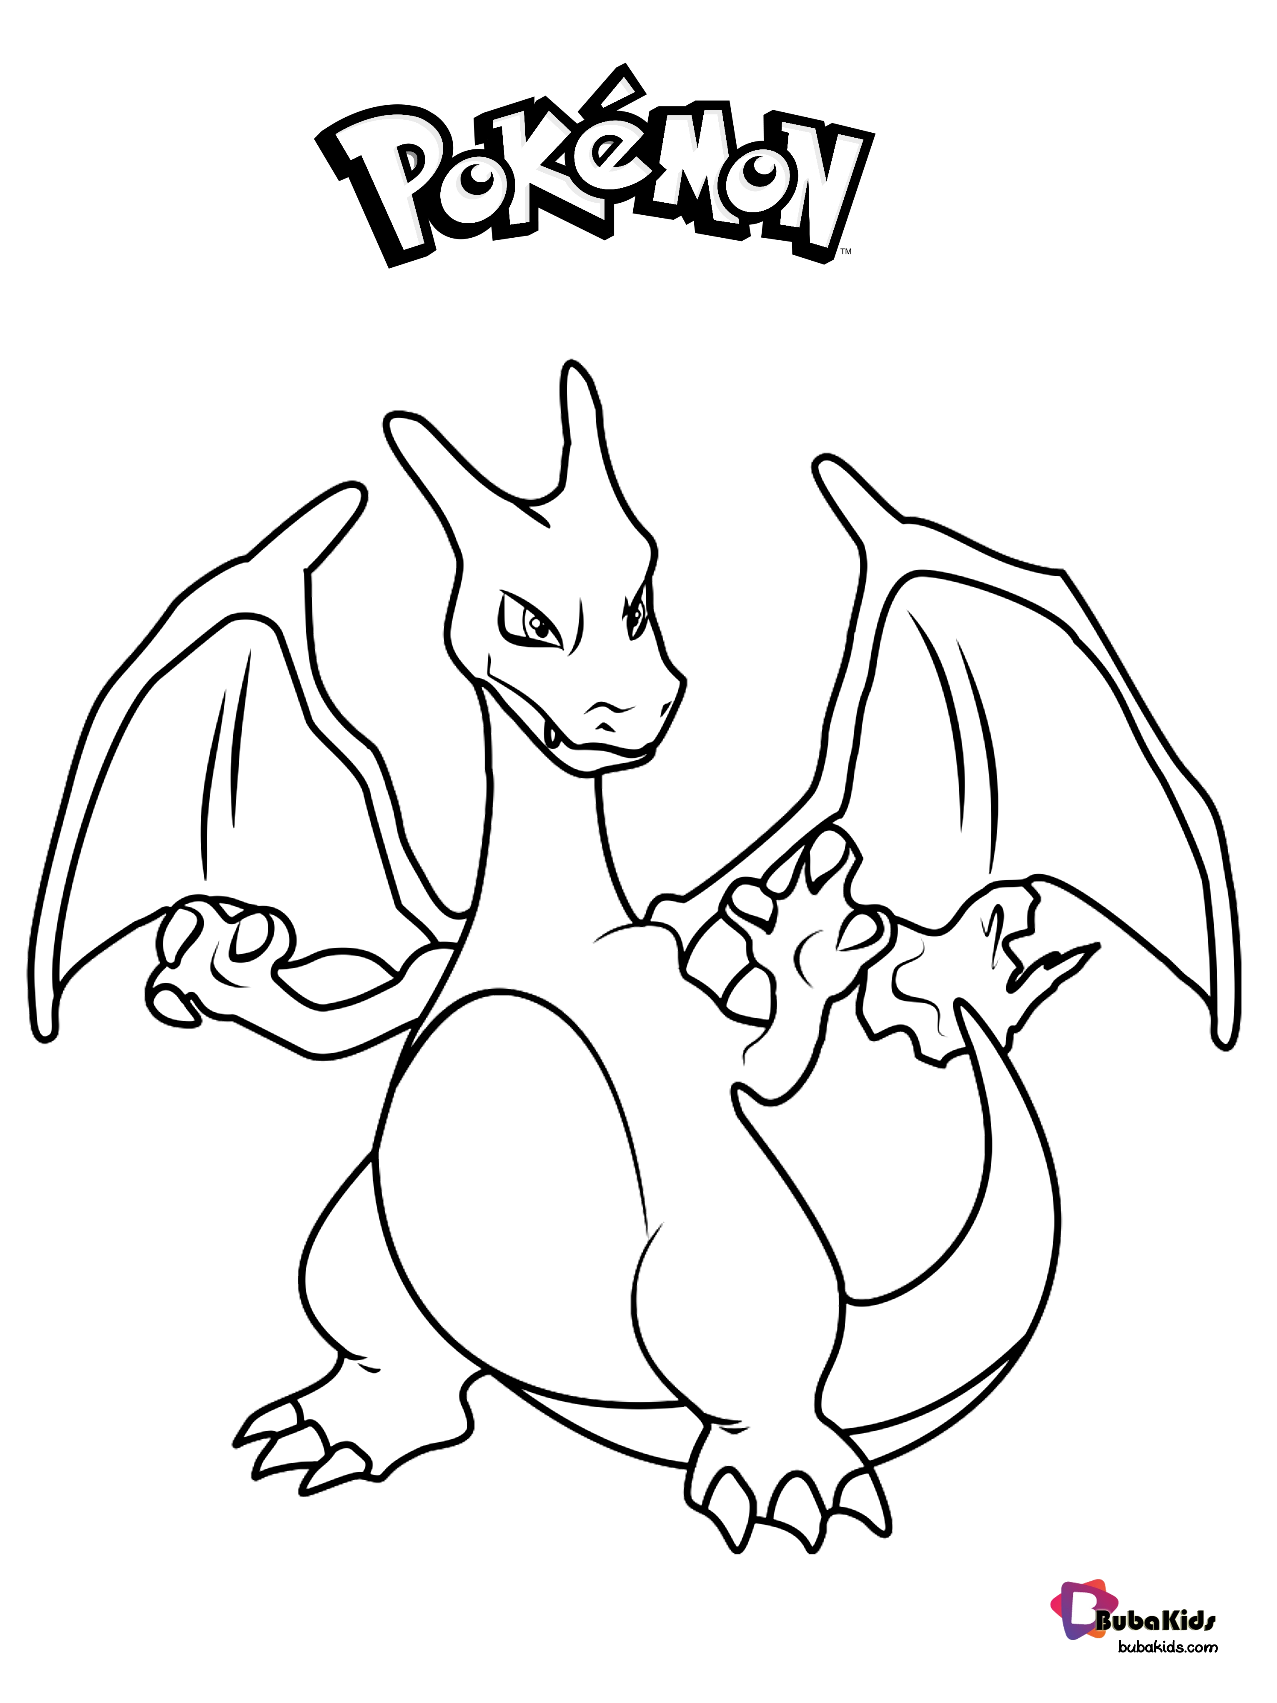 Free Pokemon Charizard Coloring Page Collection Of Cartoon Coloring Pages For Teenage Printabl In 2020 Cartoon Coloring Pages Pokemon Coloring Pages Pokemon Charizard